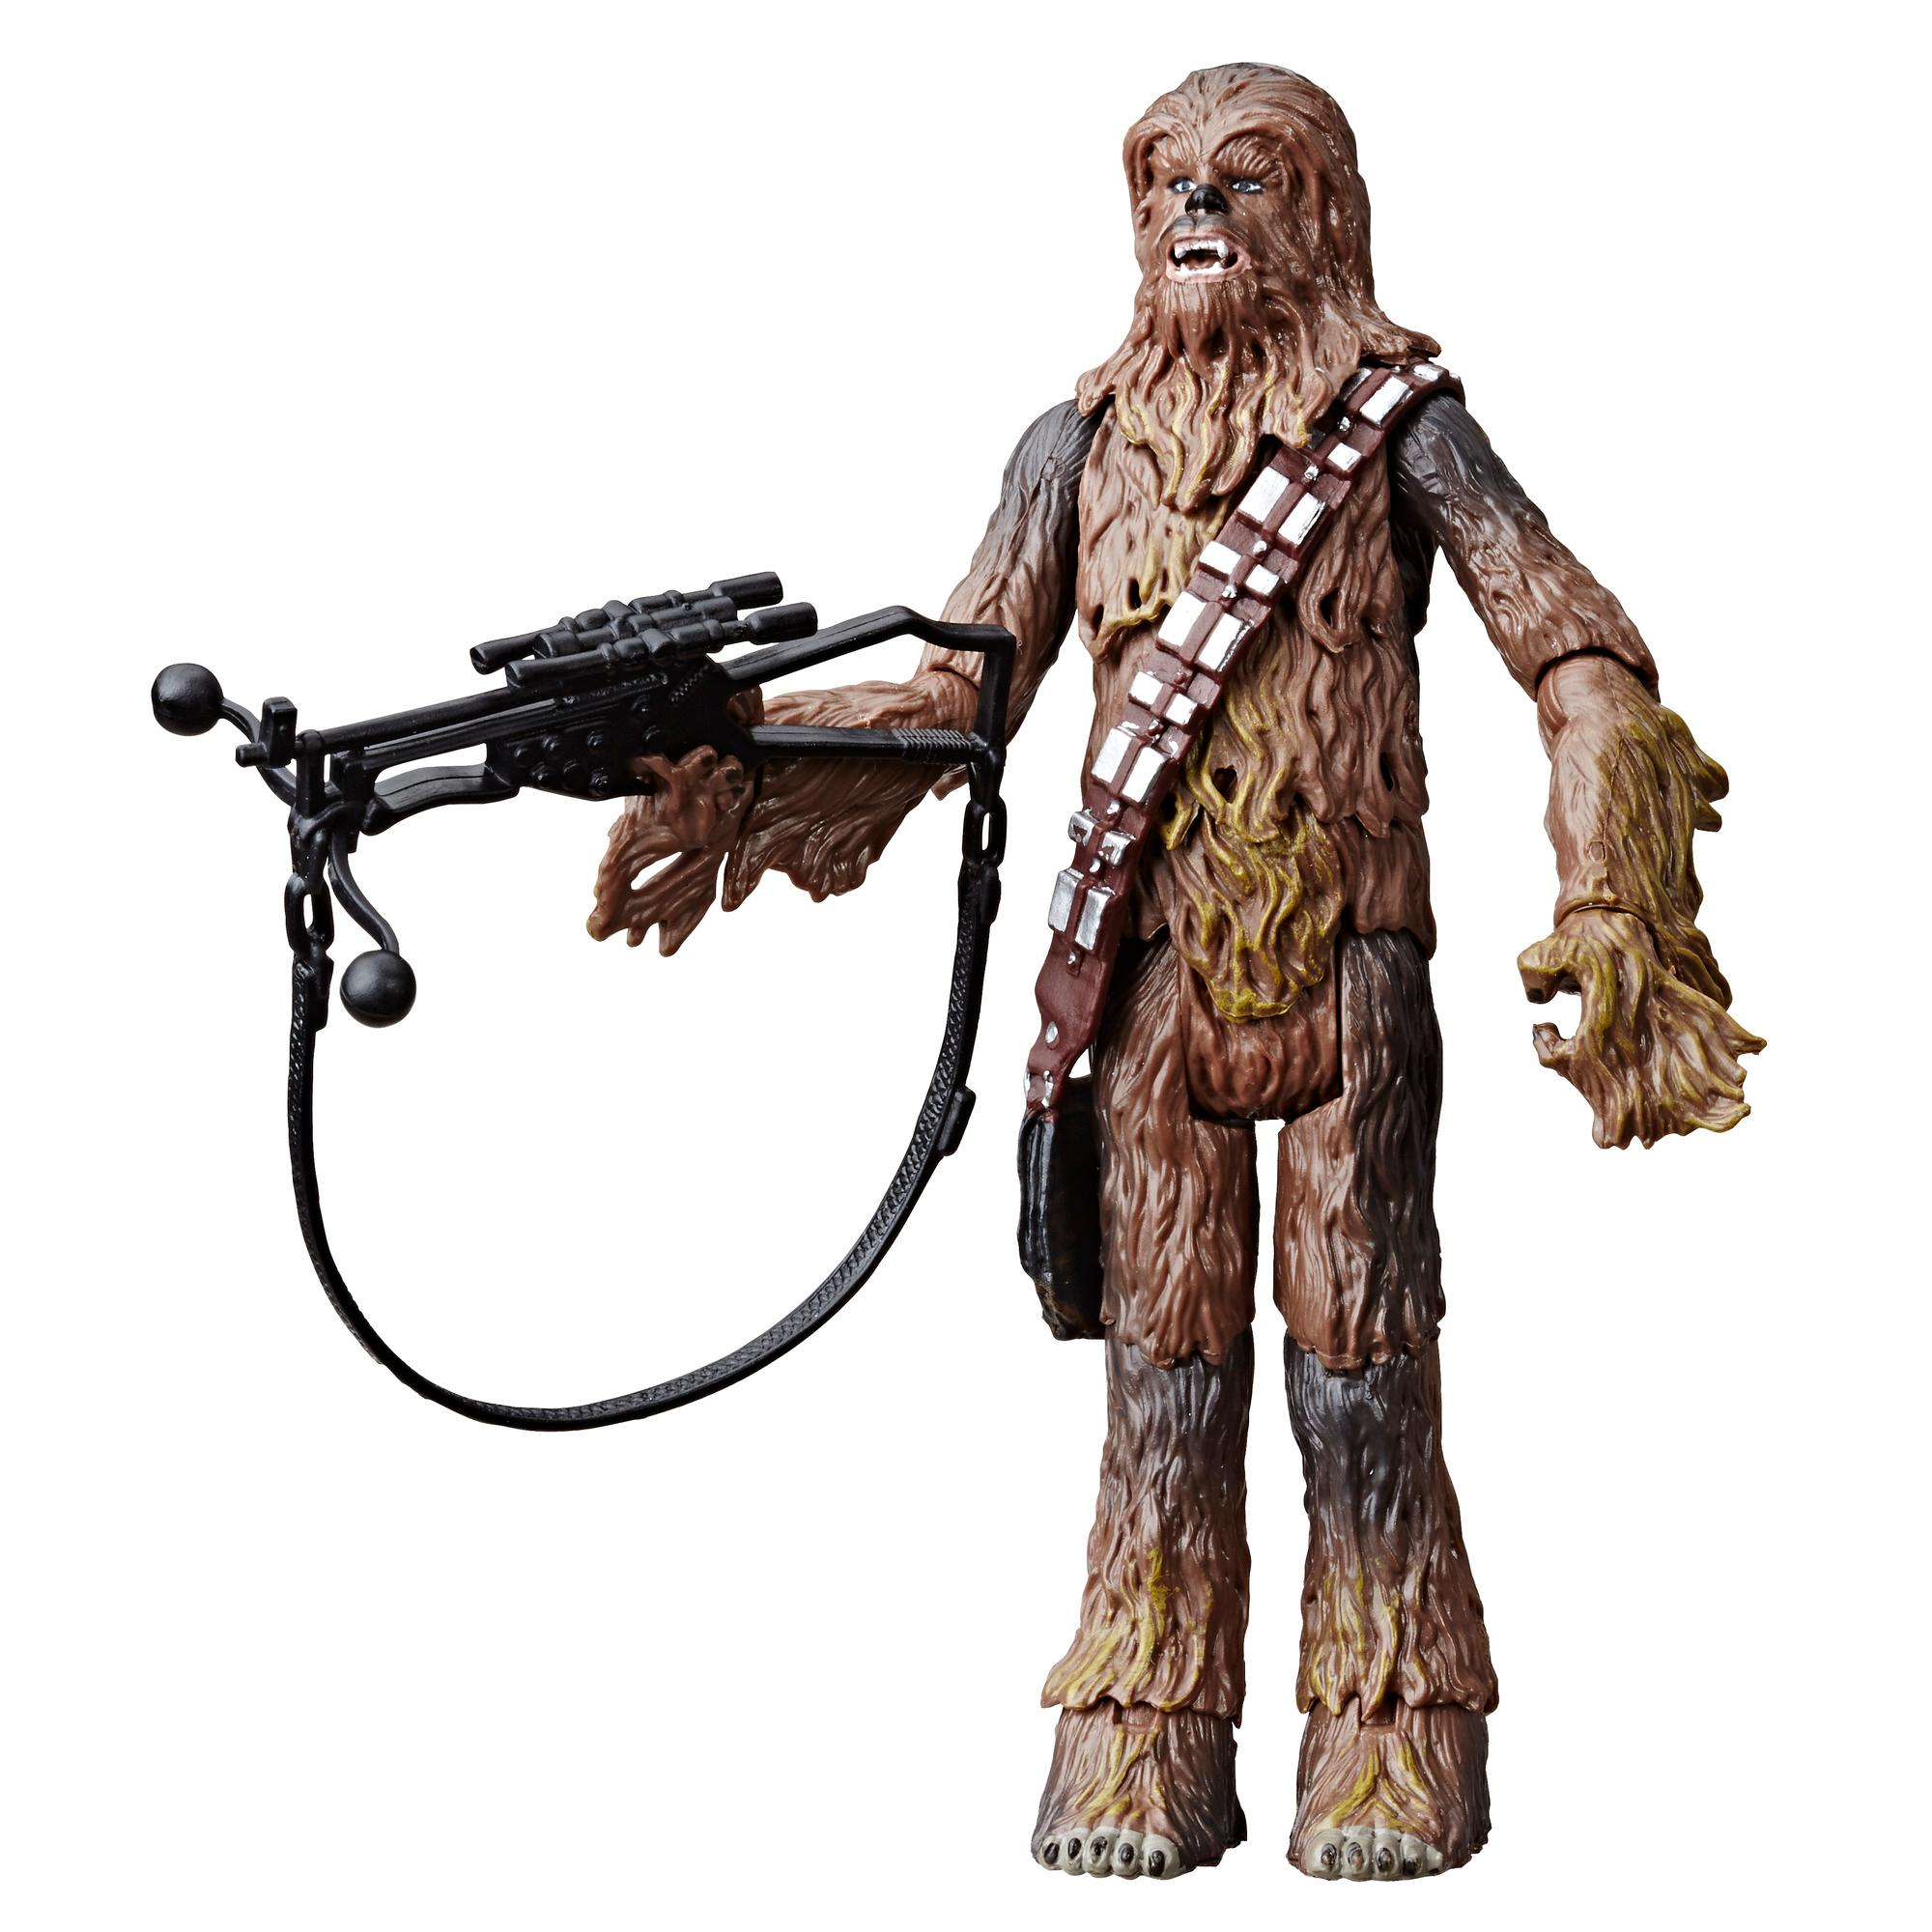 Star Wars The Vintage Collection Star Wars: A New Hope Chewbacca 3.75-inch Figure